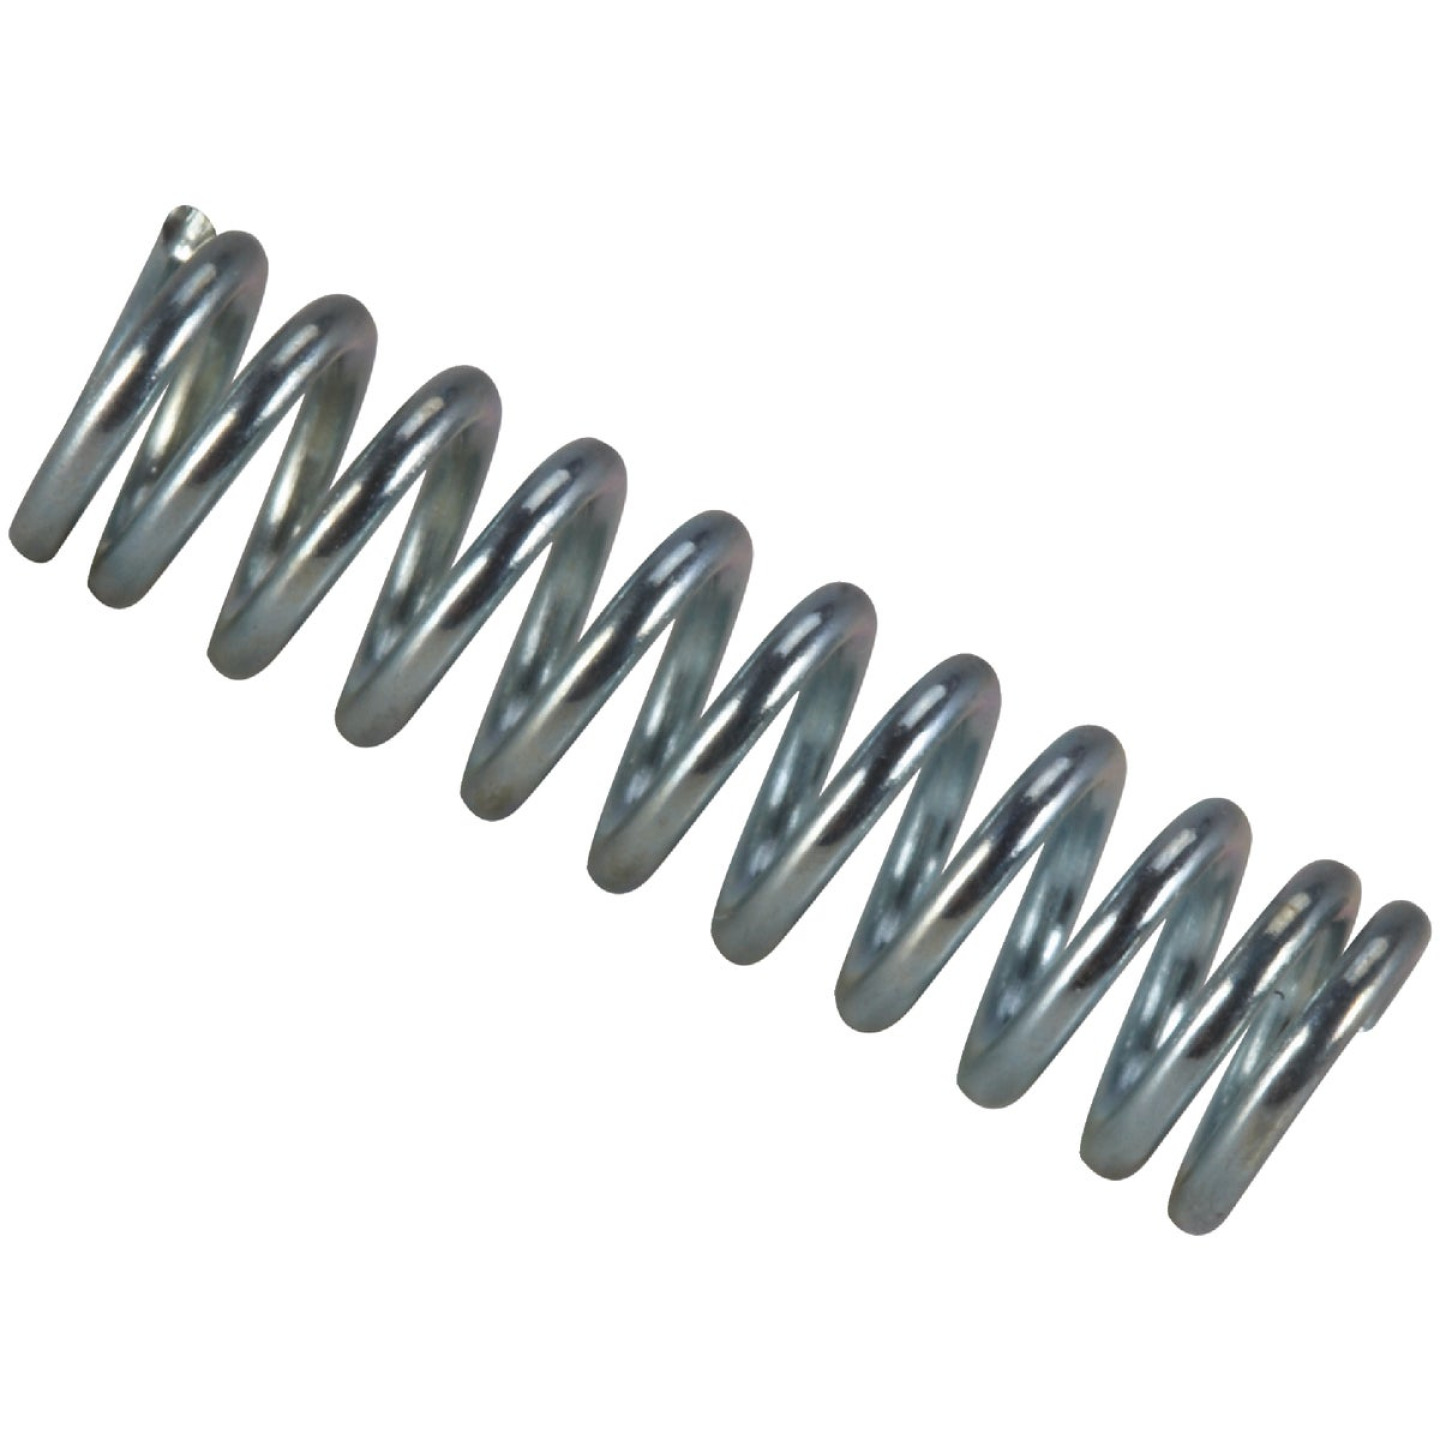 Century Spring 1-3/4 In. x 5/16 In. Compression Spring (4 Count) Image 1